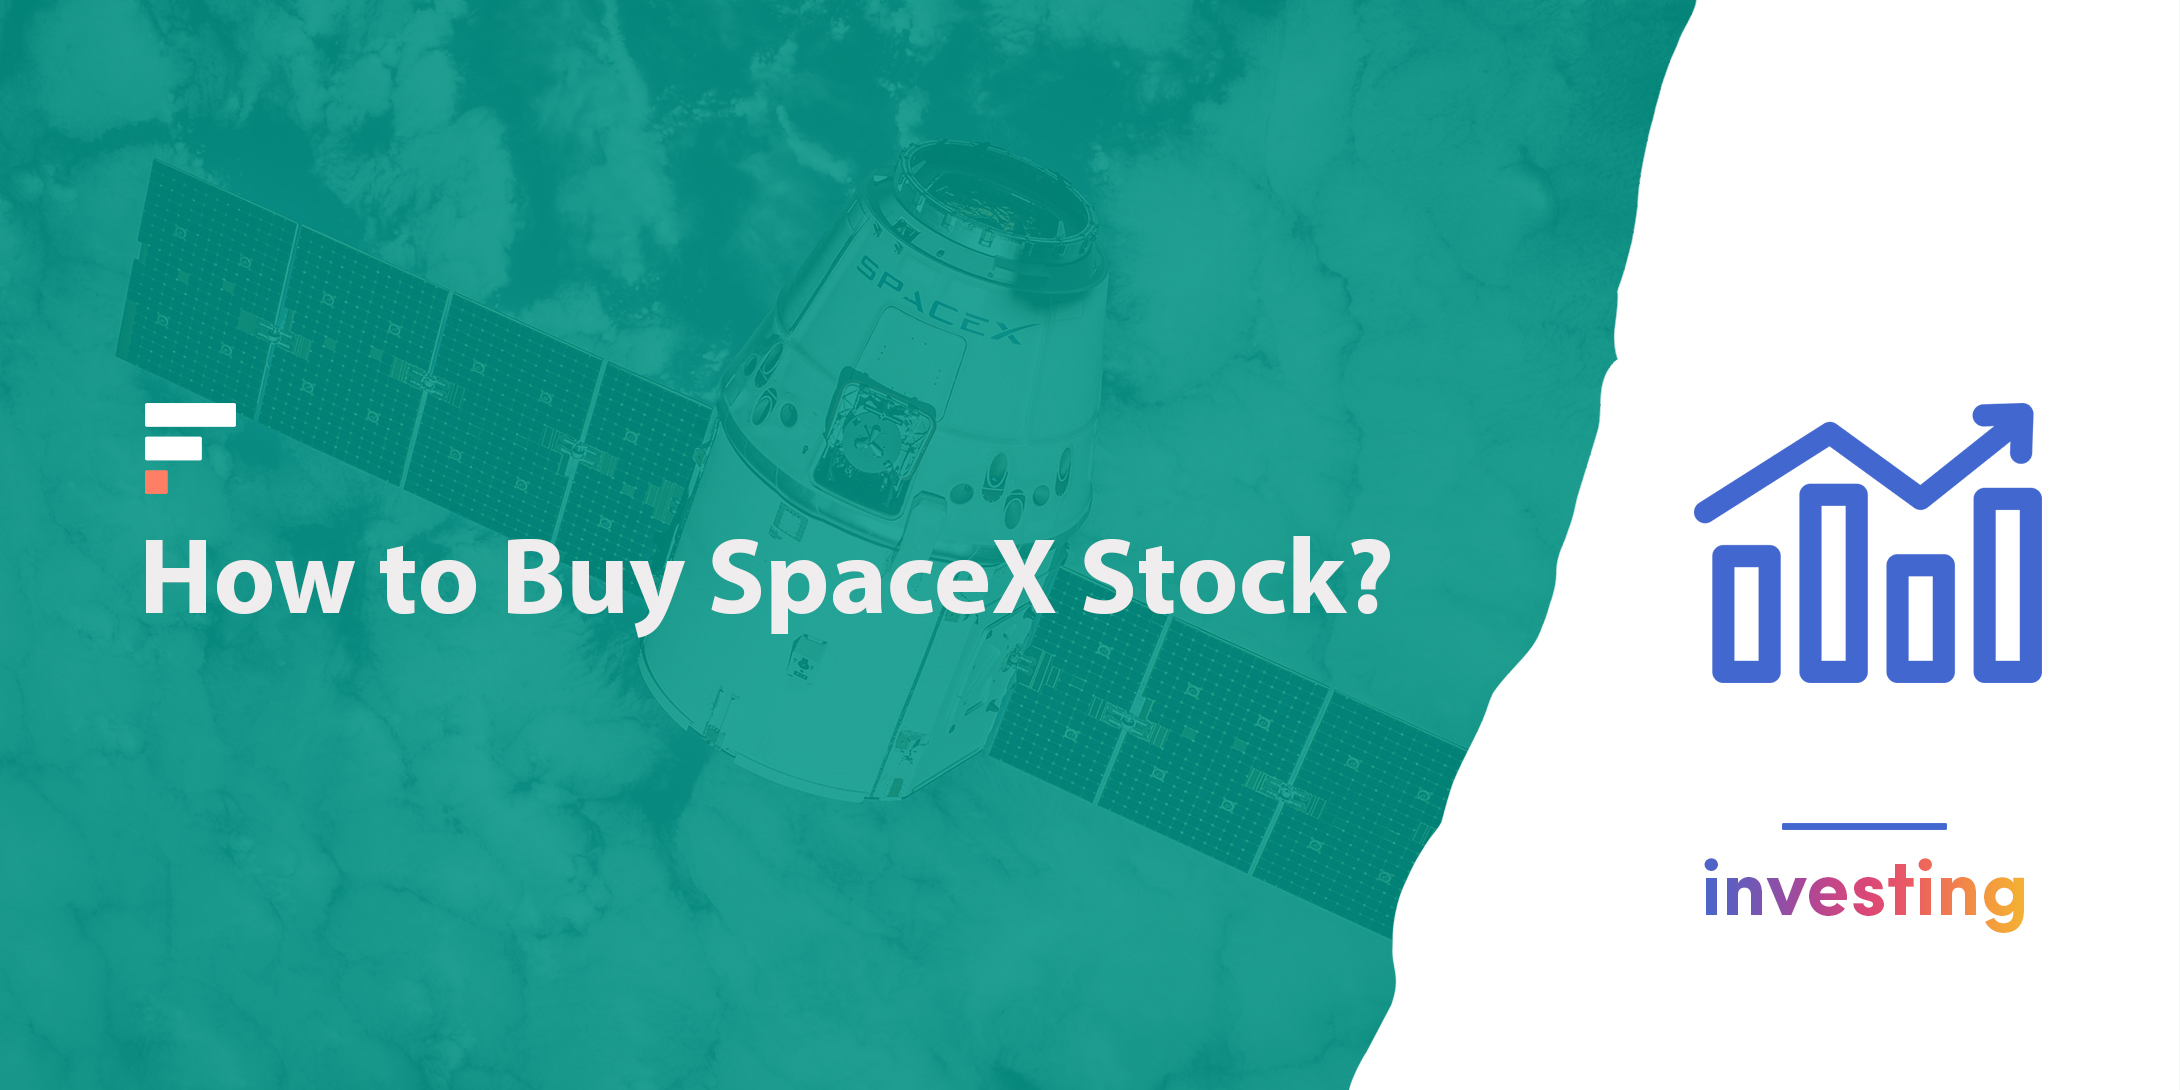 How to Buy SpaceX Stock